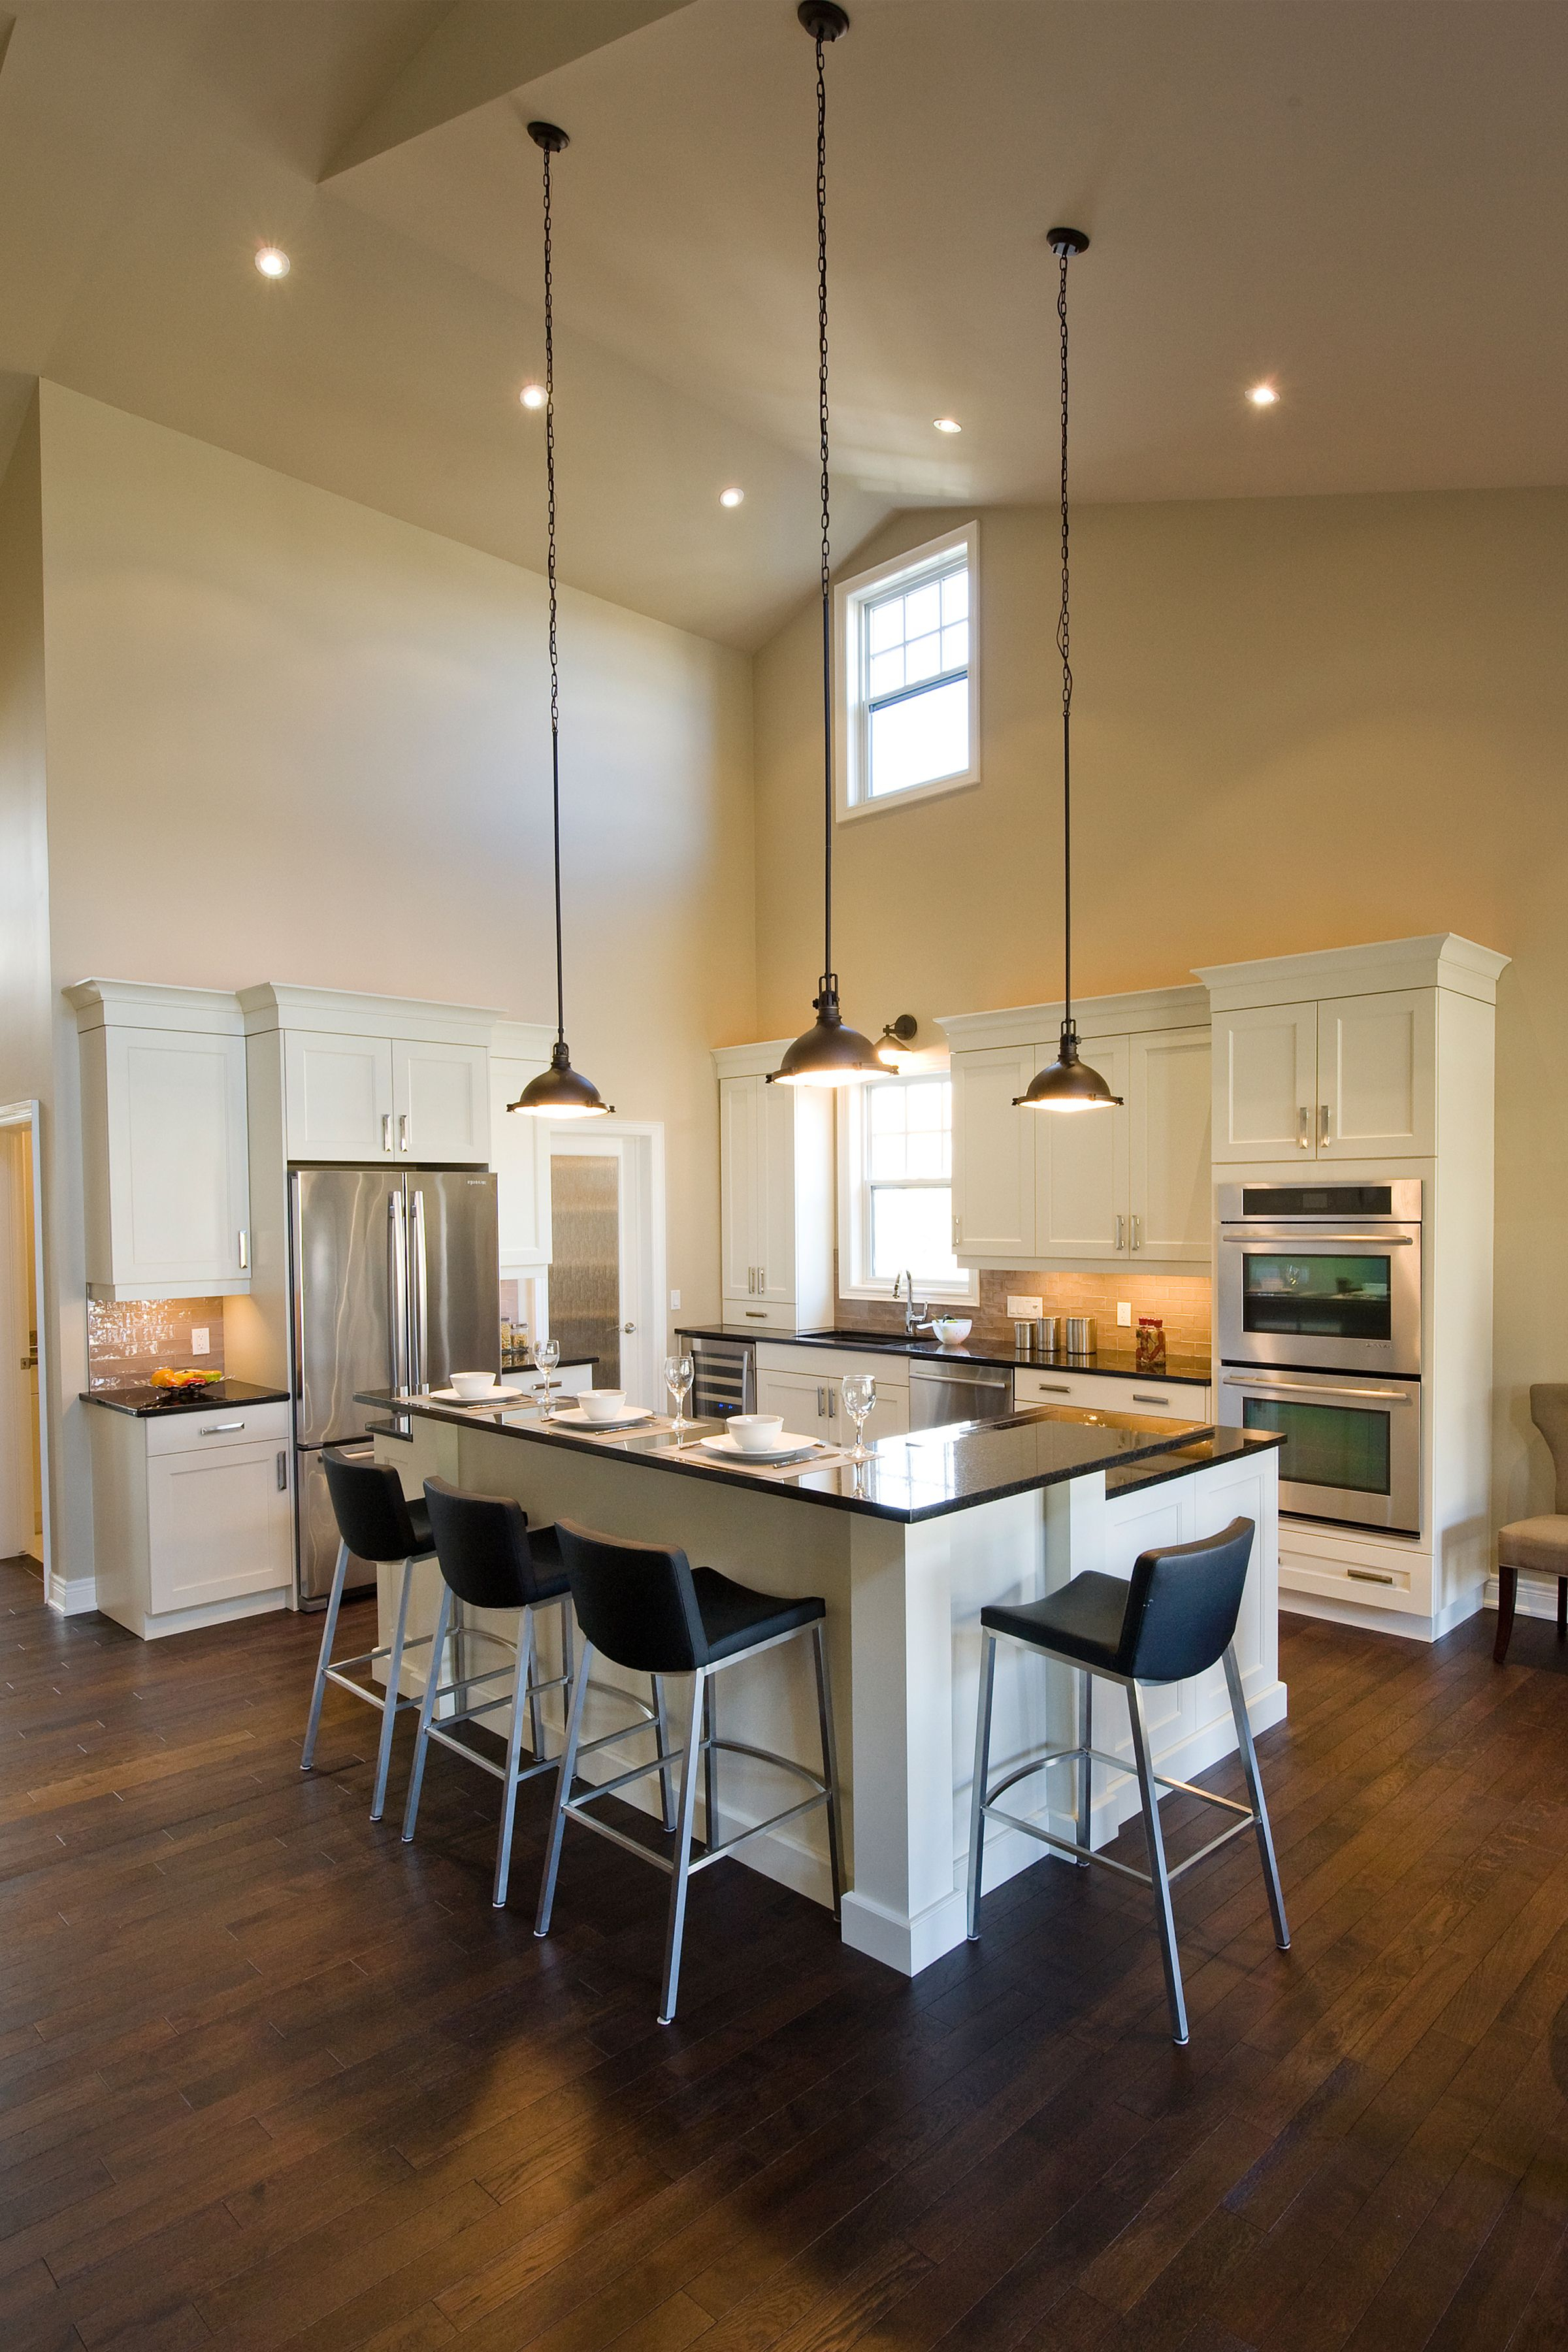 Old Mill Lane Kitchen L Shaped Breakfast Bar High Ceilings